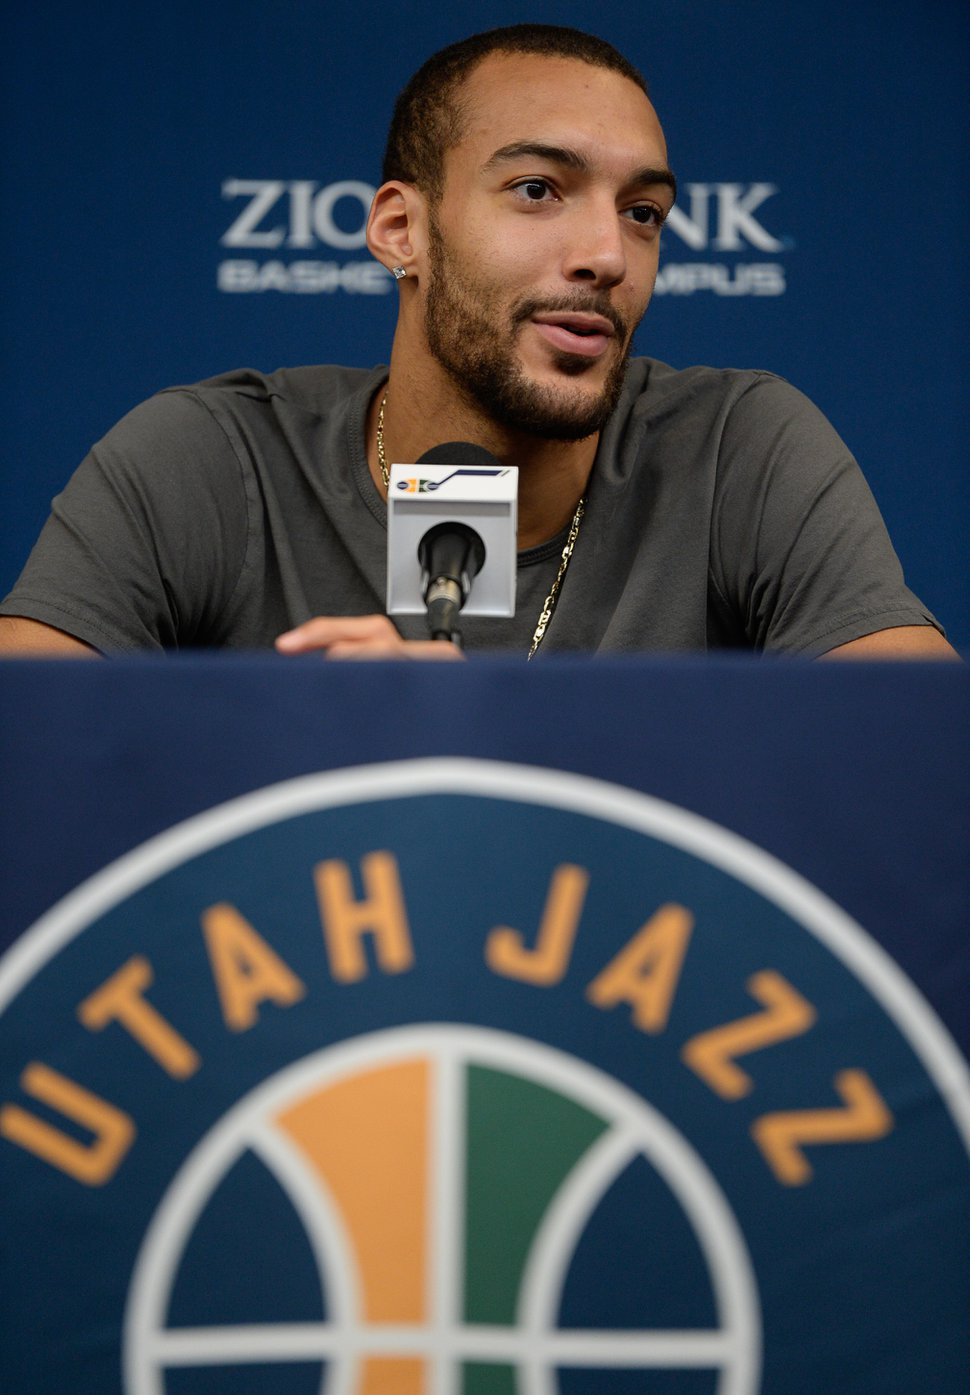 (Francisco Kjolseth | Tribune file photo) Rudy Gobert of the Utah Jazz speaks with the media following their season-ending game at the team practice facility on Thursday, April 25. 2019.